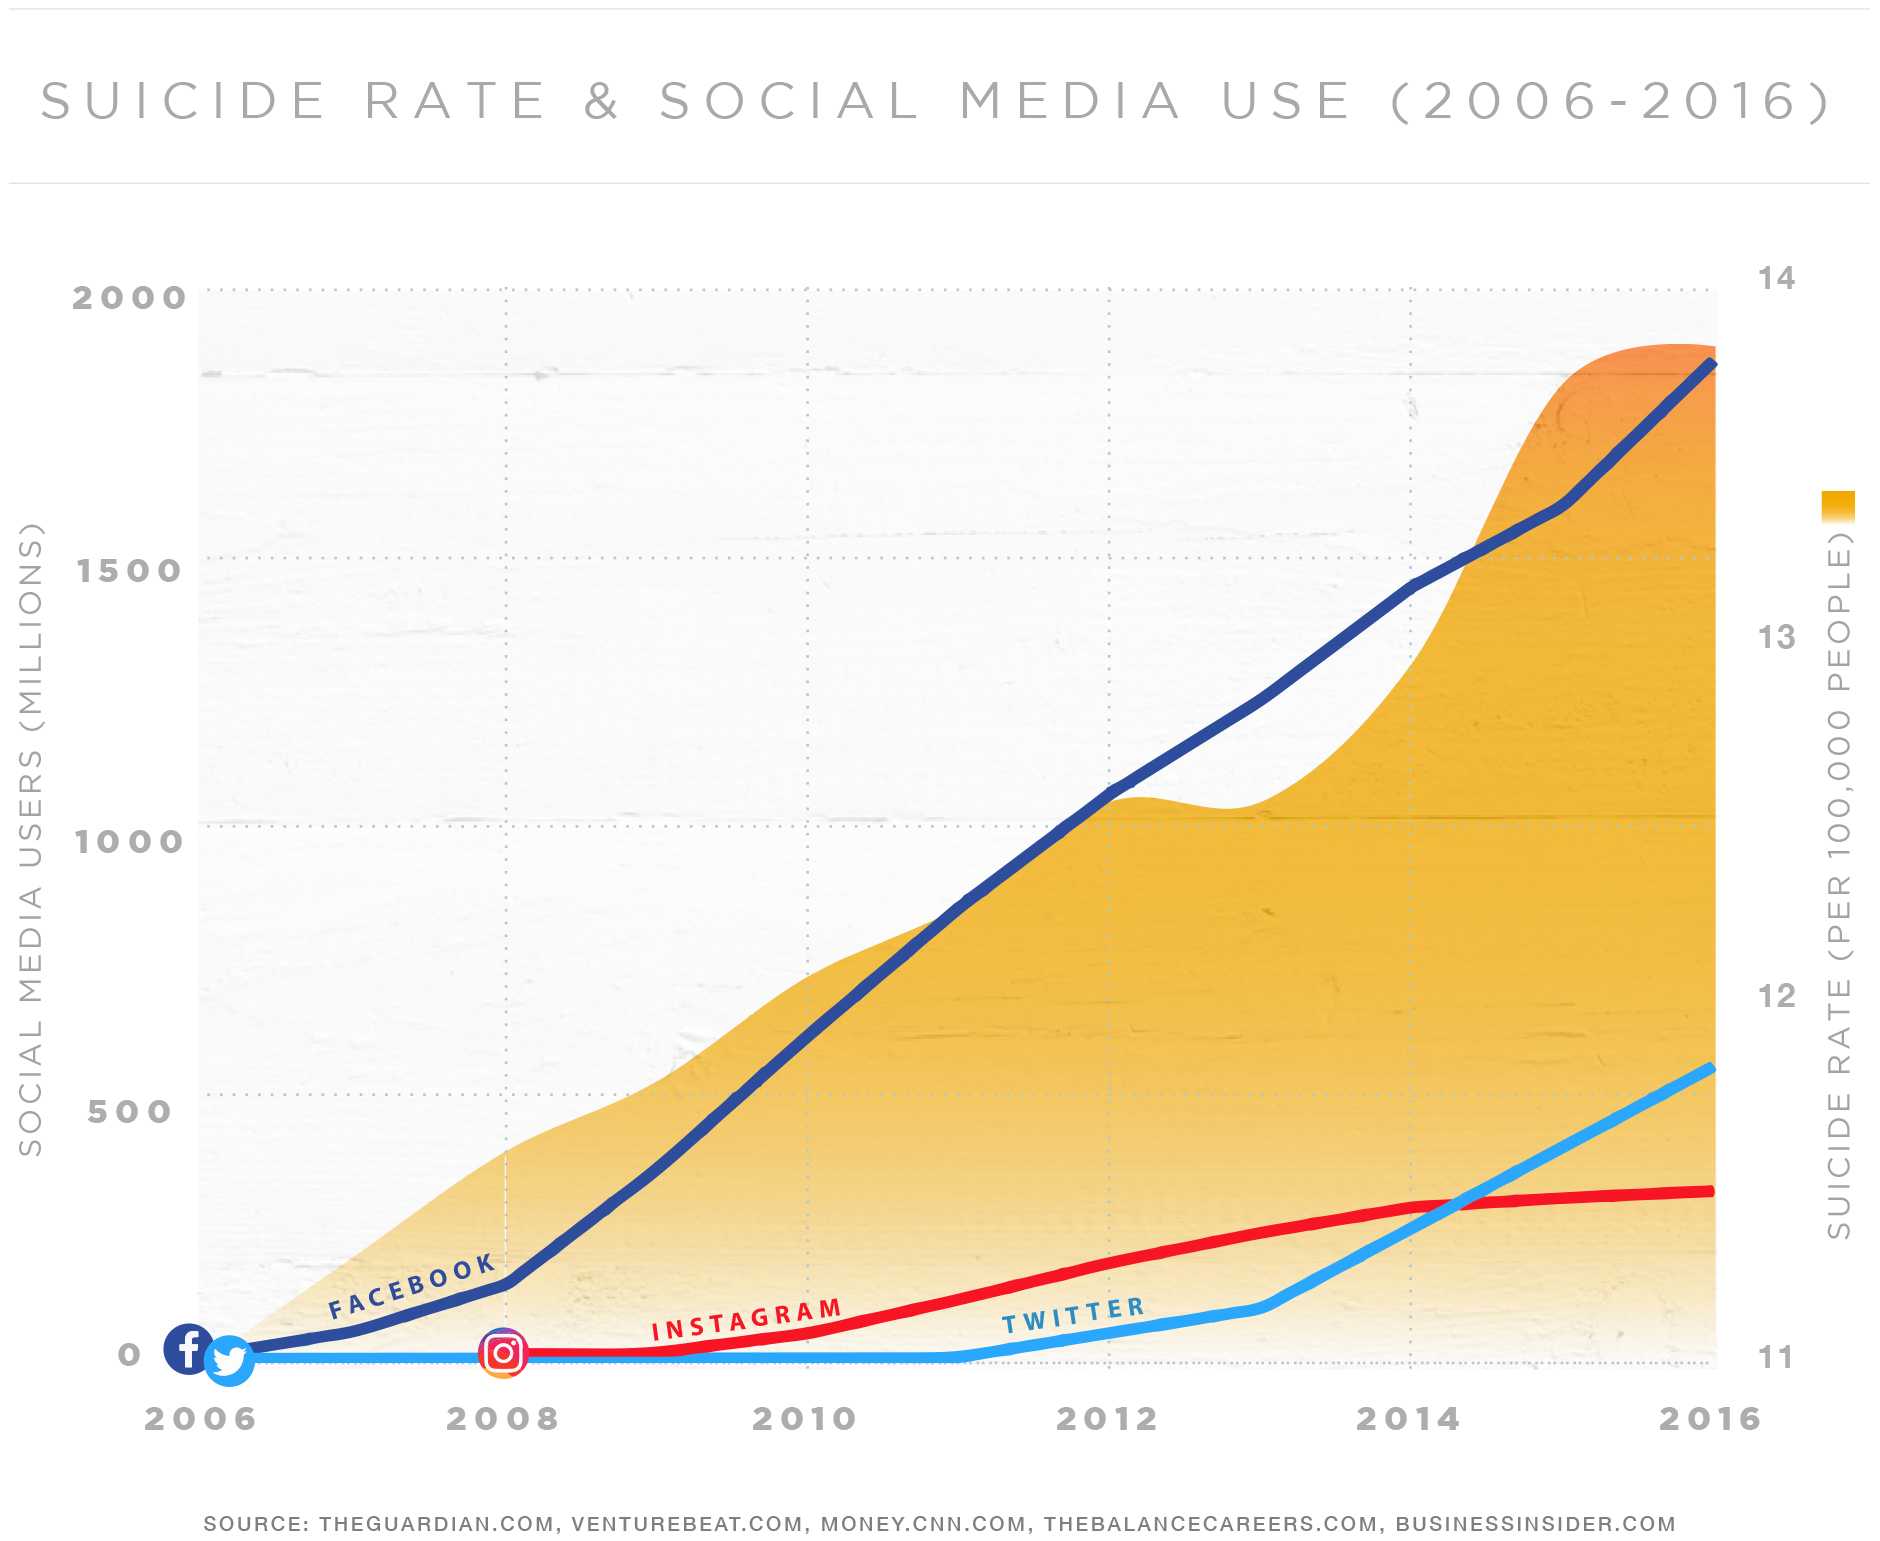 Graph showing suicide rates and social media use rates from 2006 to 2016